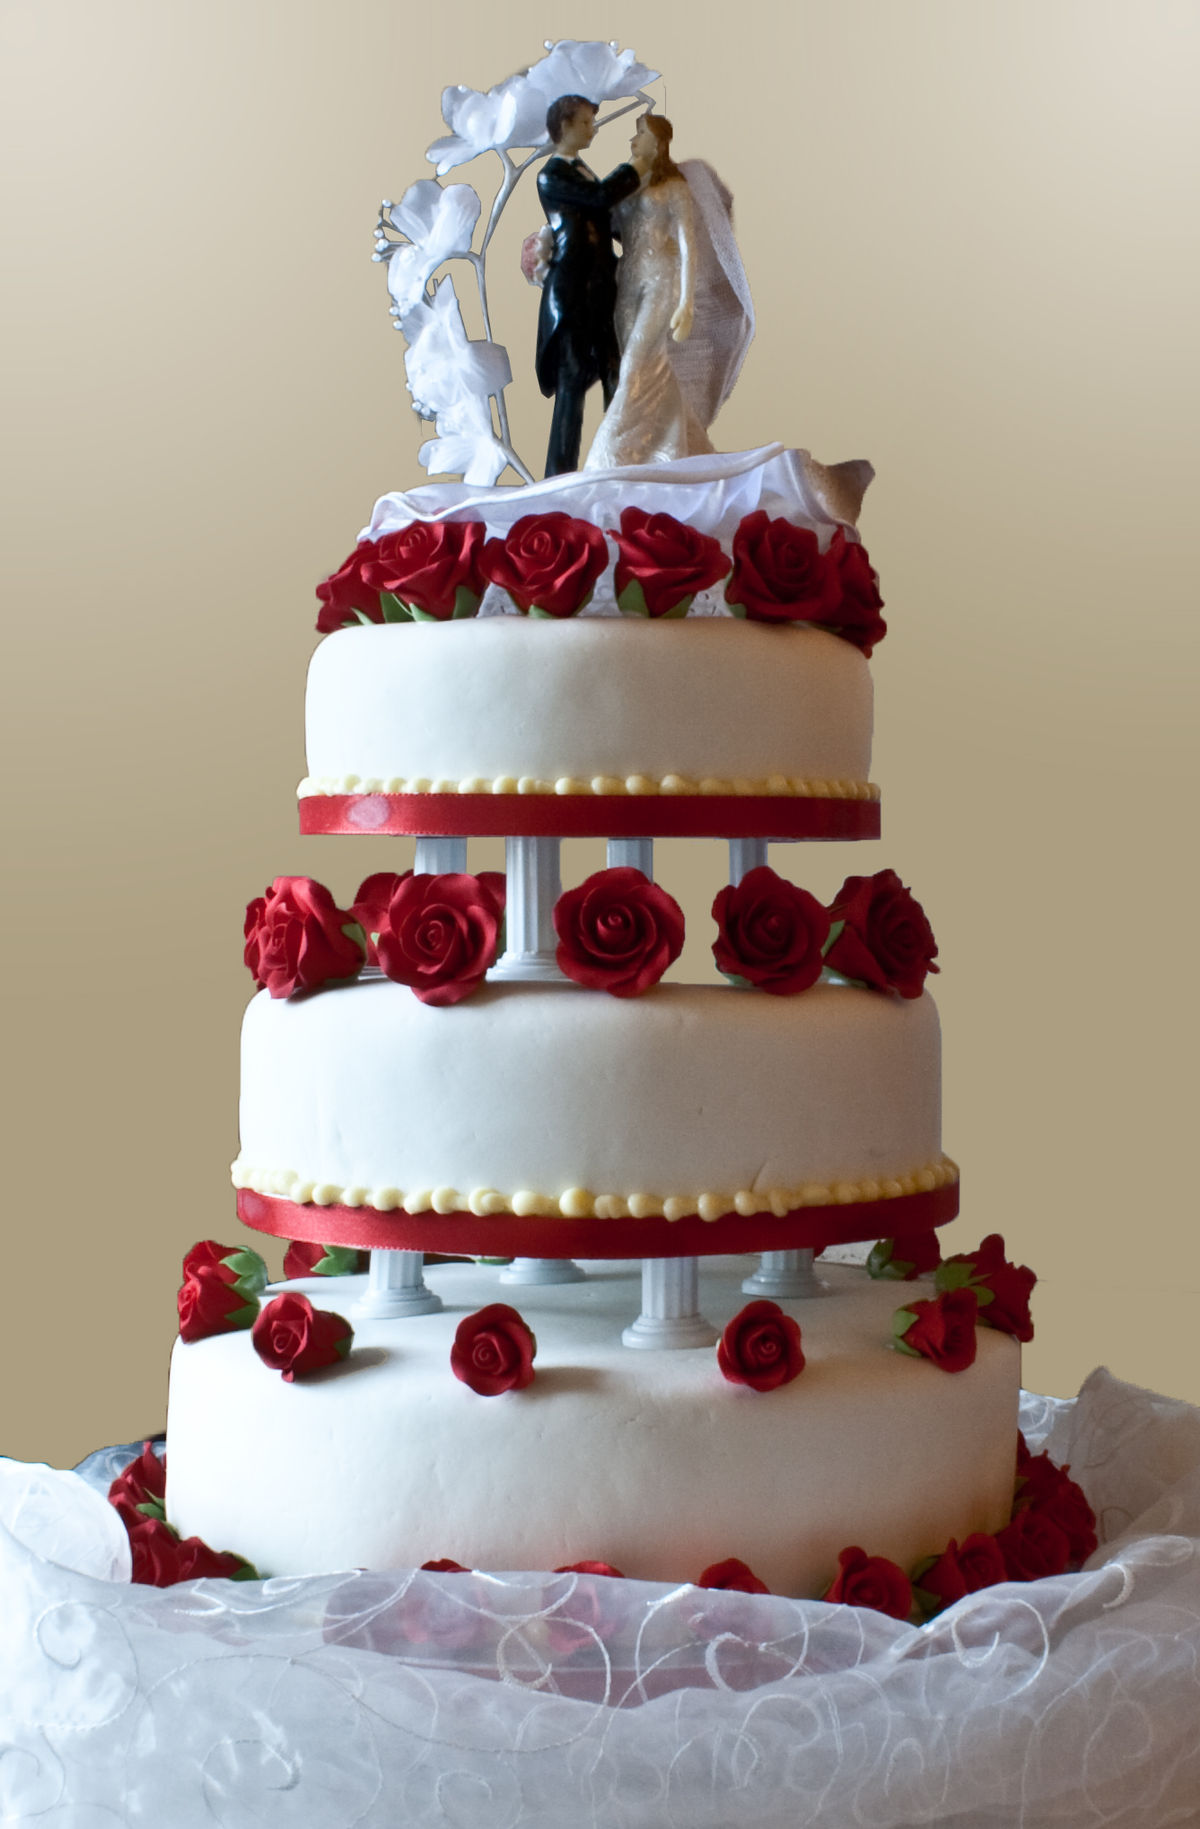 Marriage Anniversary Cake Design